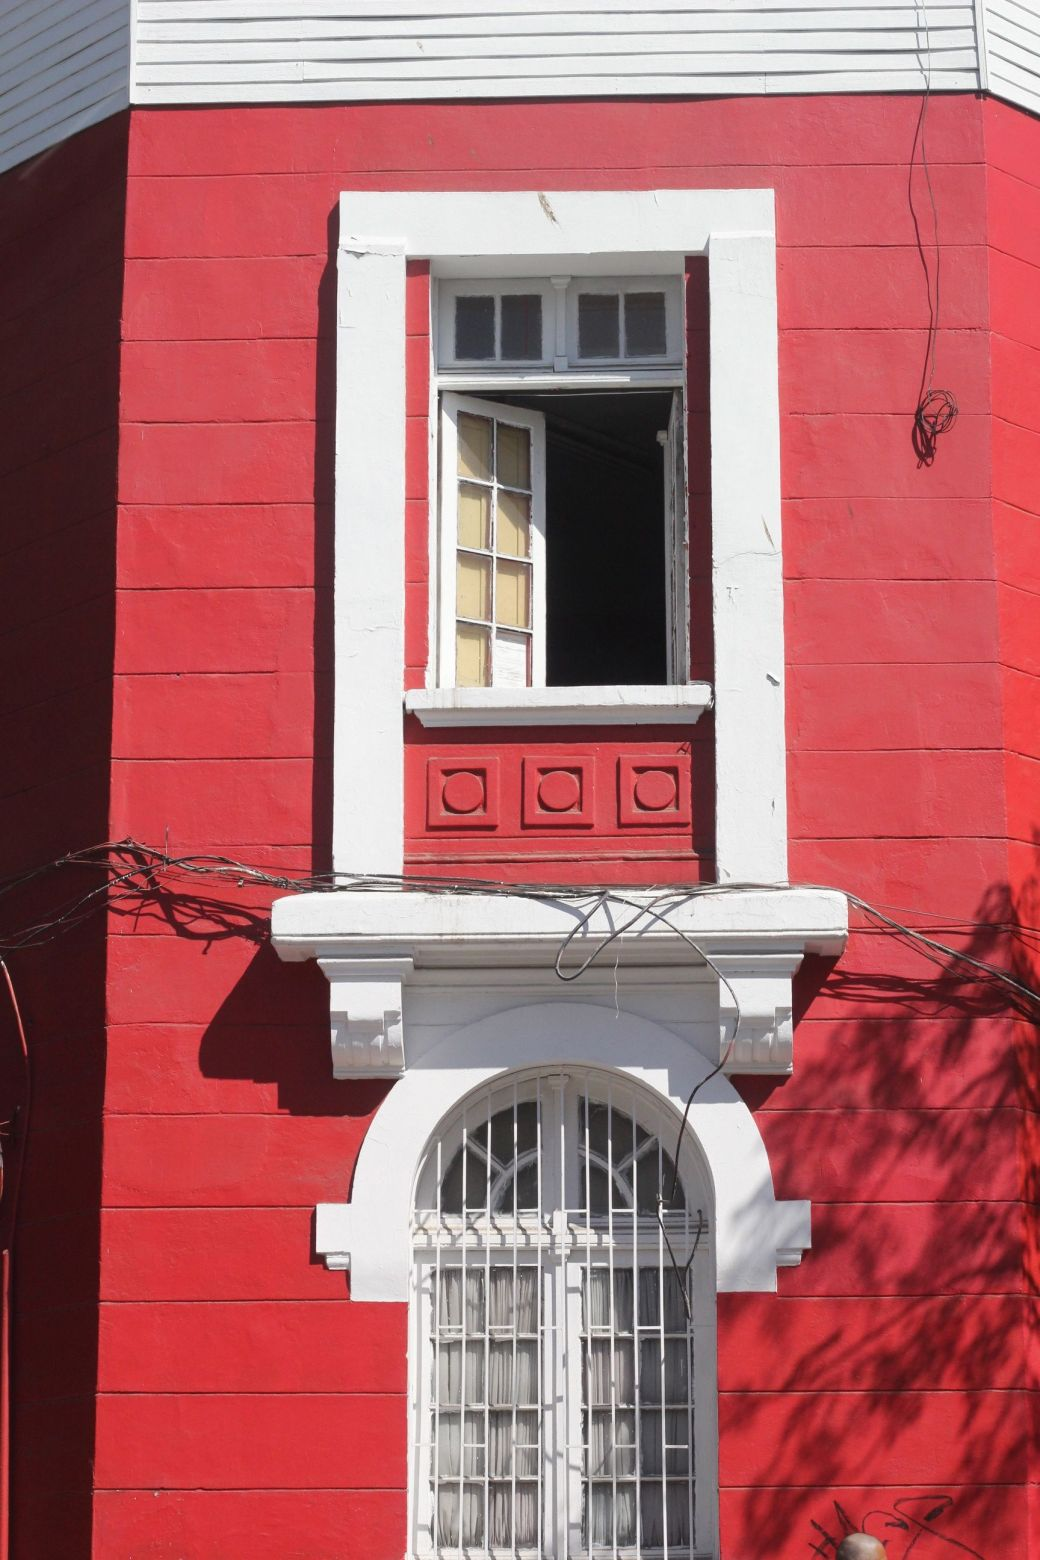 chile santiago red building